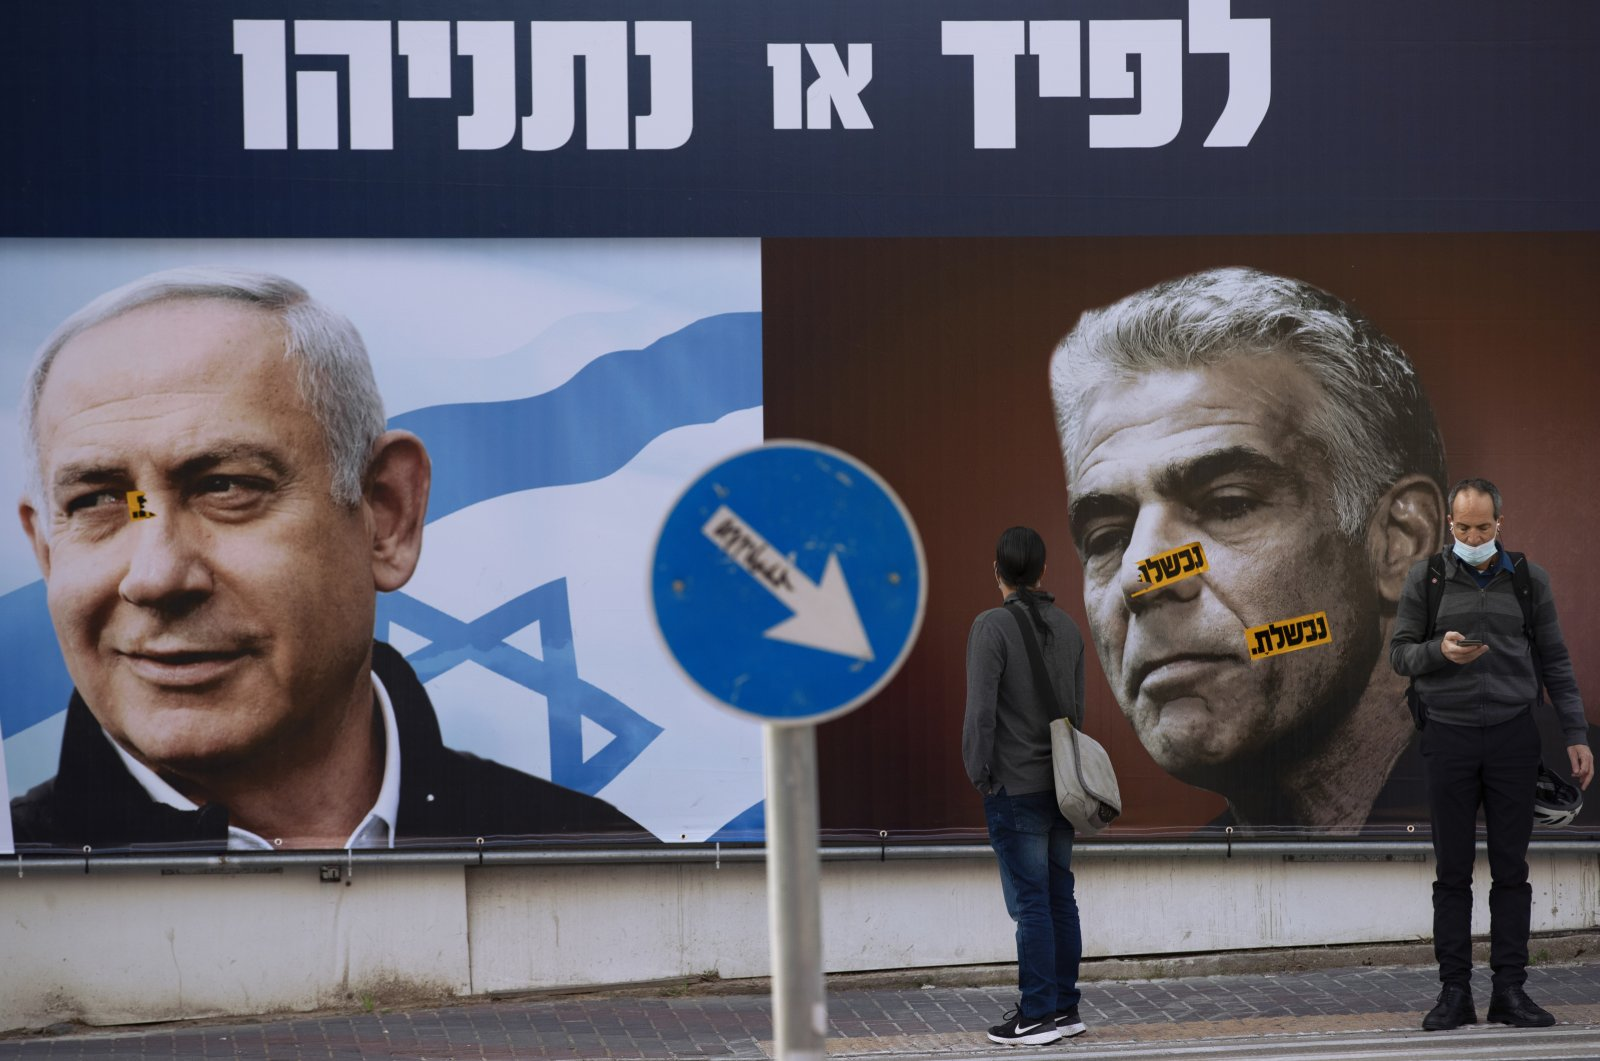 People stand in front of an election campaign billboard for the Likud party showing a portrait of its leader Prime Minister Benjamin Netanyahu (L) and opposition party leader Yair Lapid, in Ramat Gan, Israel, March 14, 2021. (AP Photo)